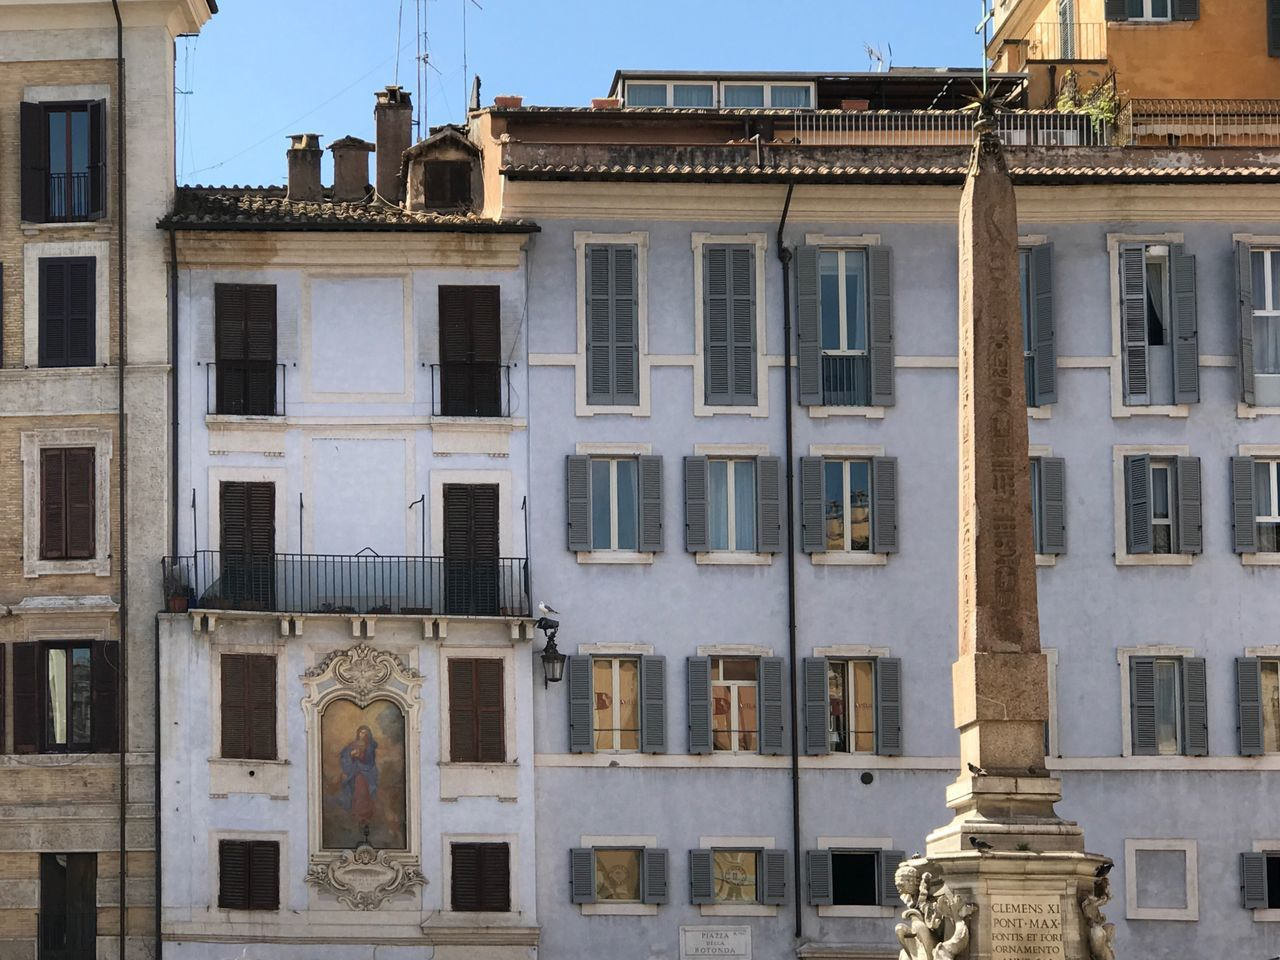 Facades Building Exterior Architecture Built Structure Window Outdoors Low Angle View City No People Sky Day Architecture Widows Rome Pantheon Building Facade Building Façade